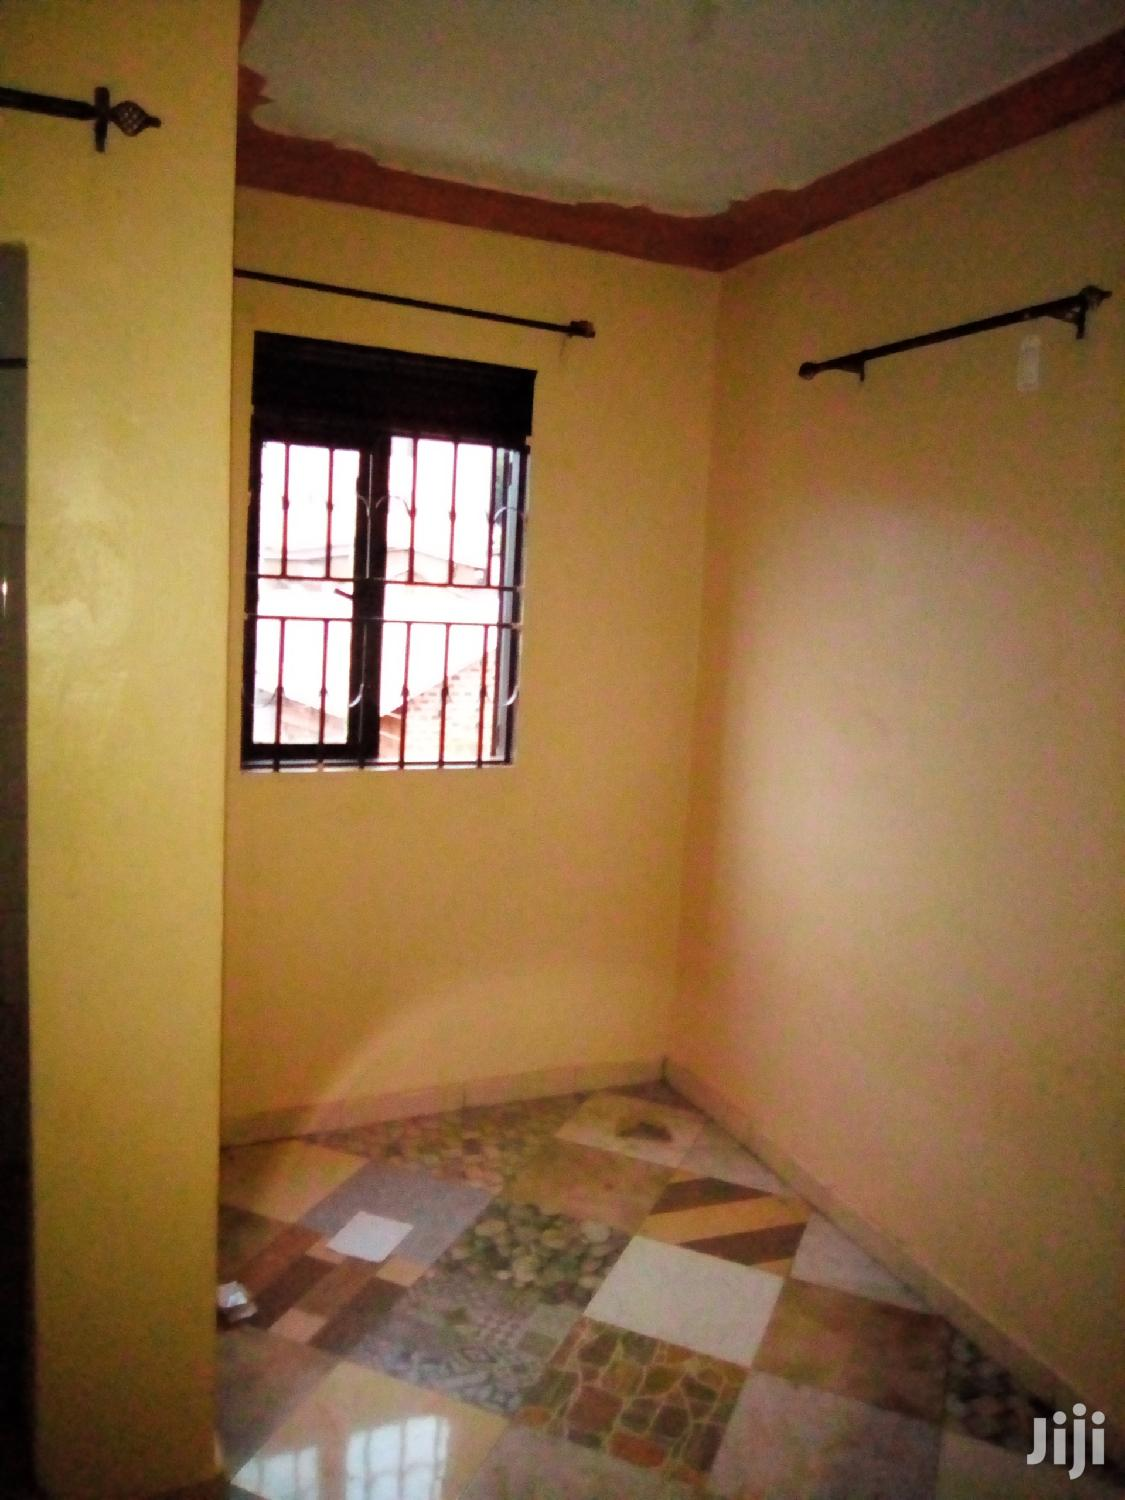 Single Self Contained Room for Rent in Kitintale   Houses & Apartments For Rent for sale in Kampala, Central Region, Uganda